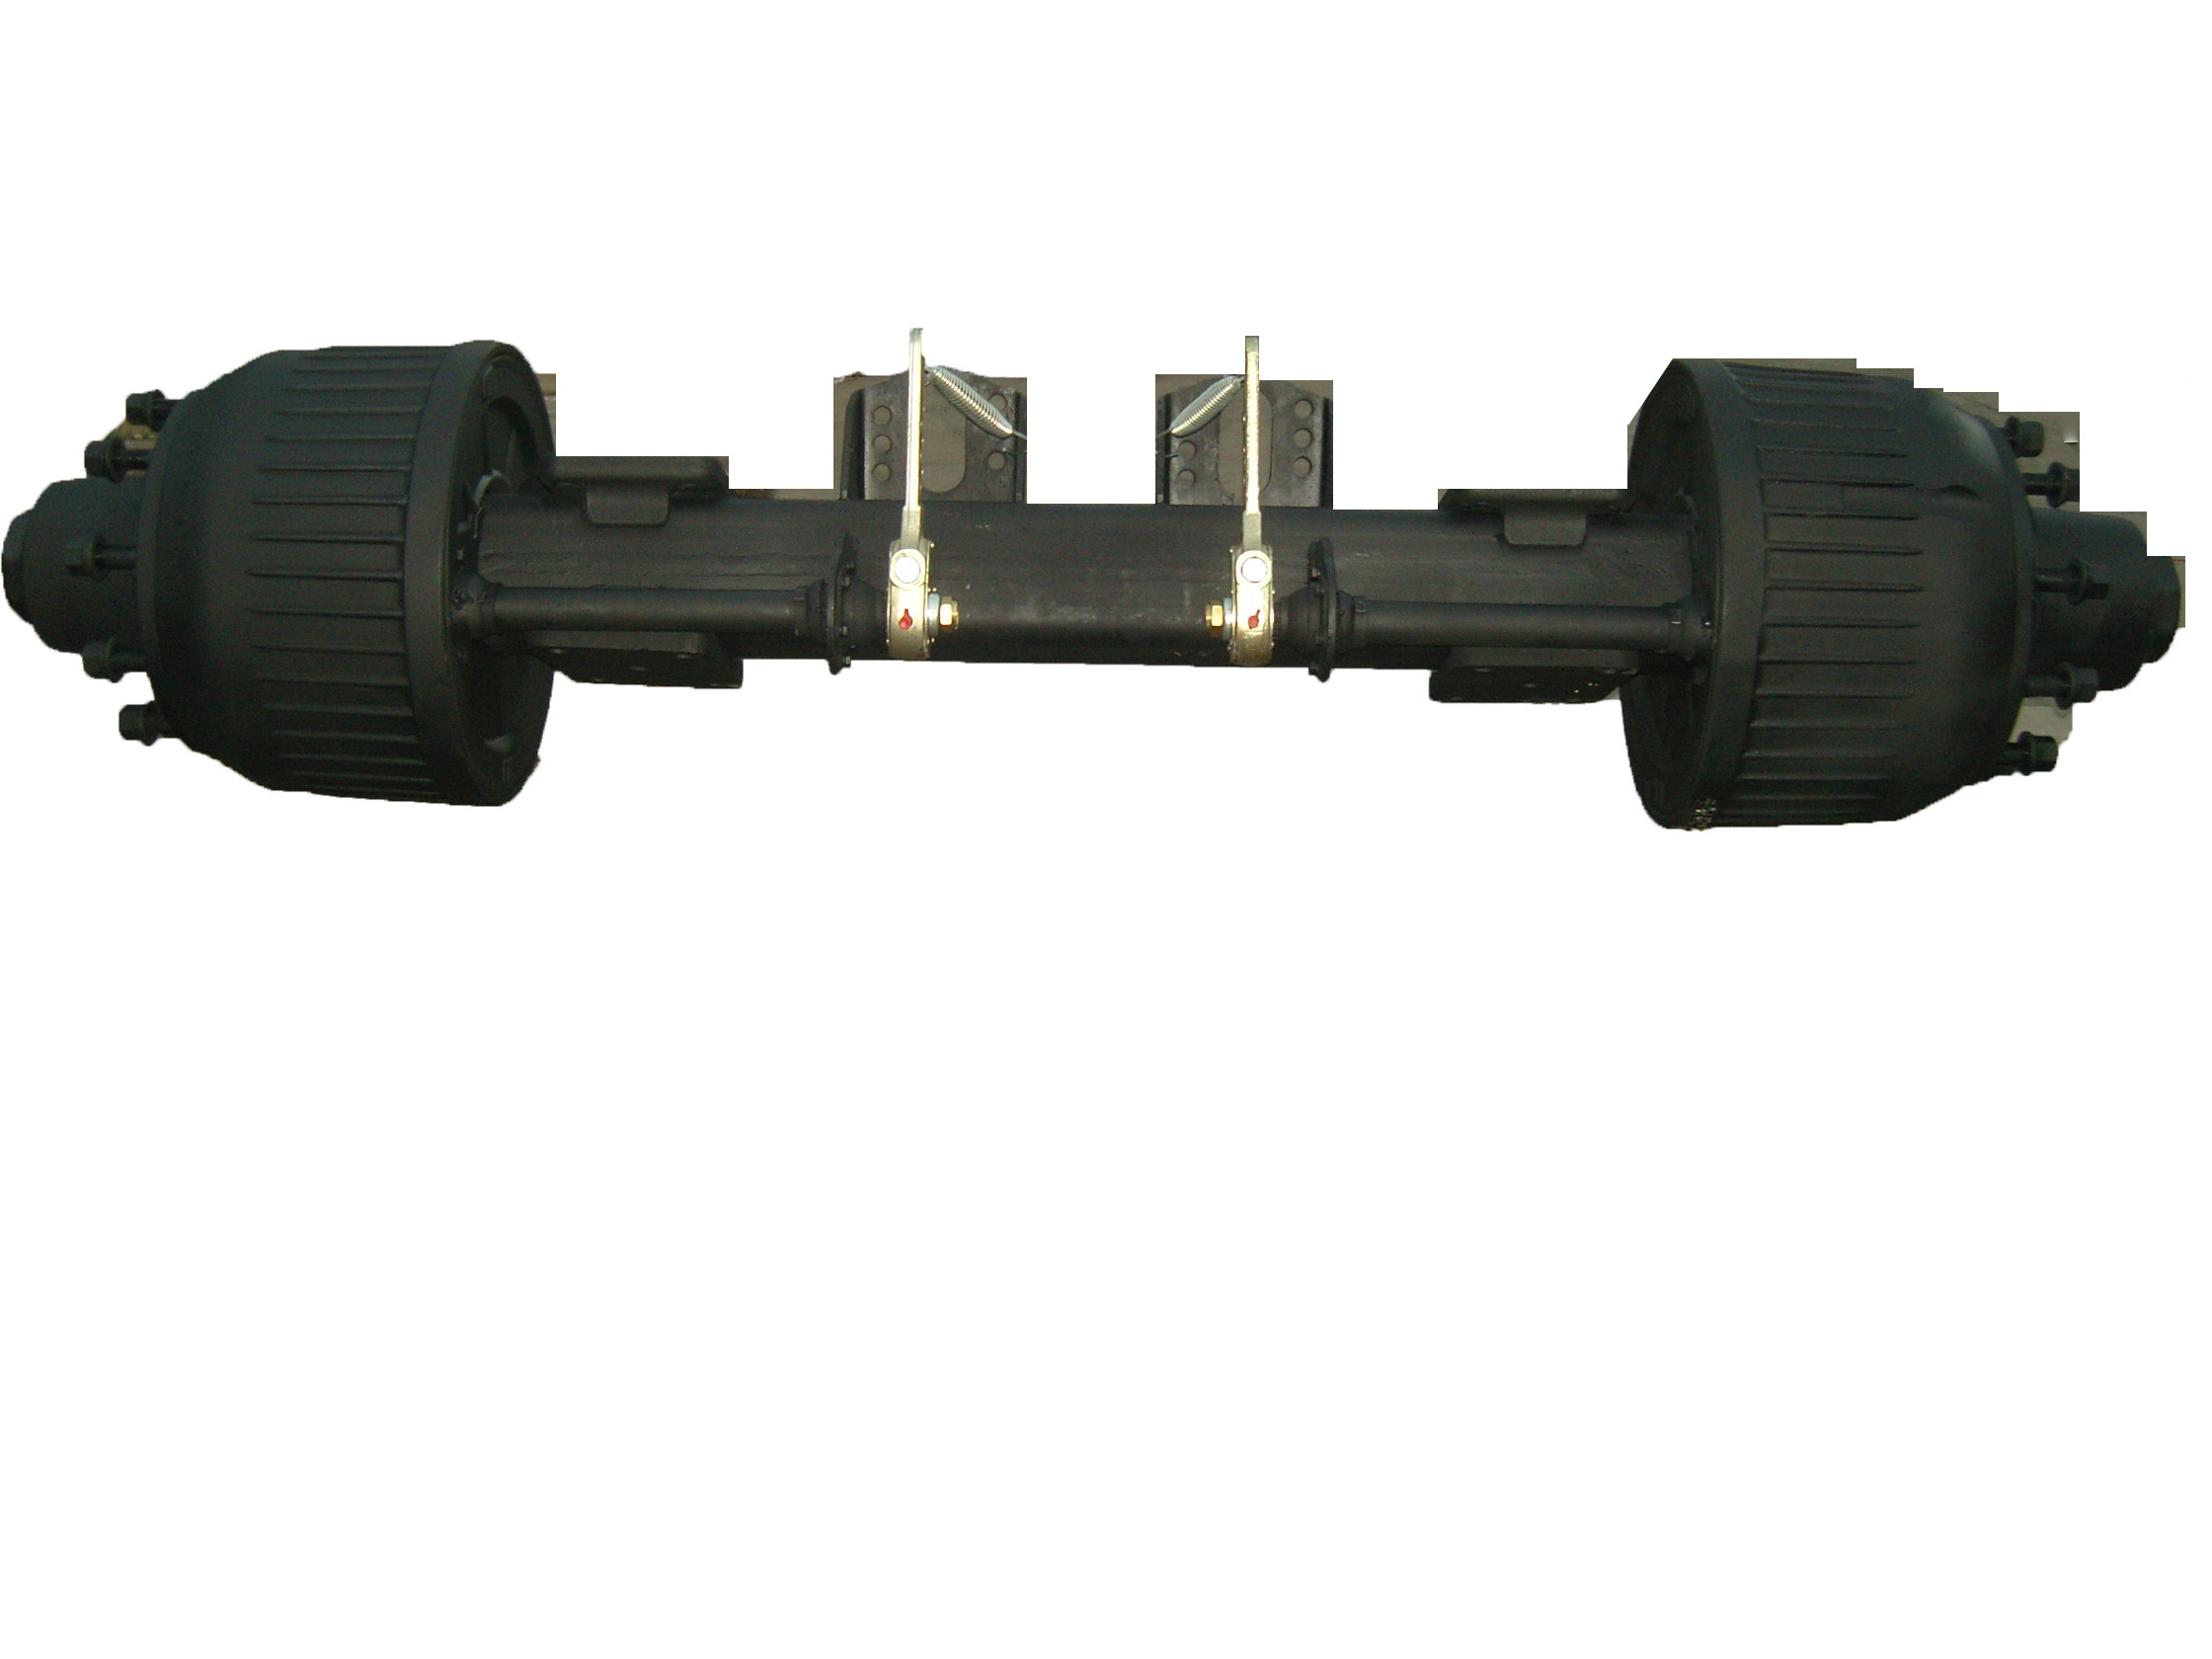 Hot sellling Trailer Axles 16 ton American type axles by Traielr axles manufacture